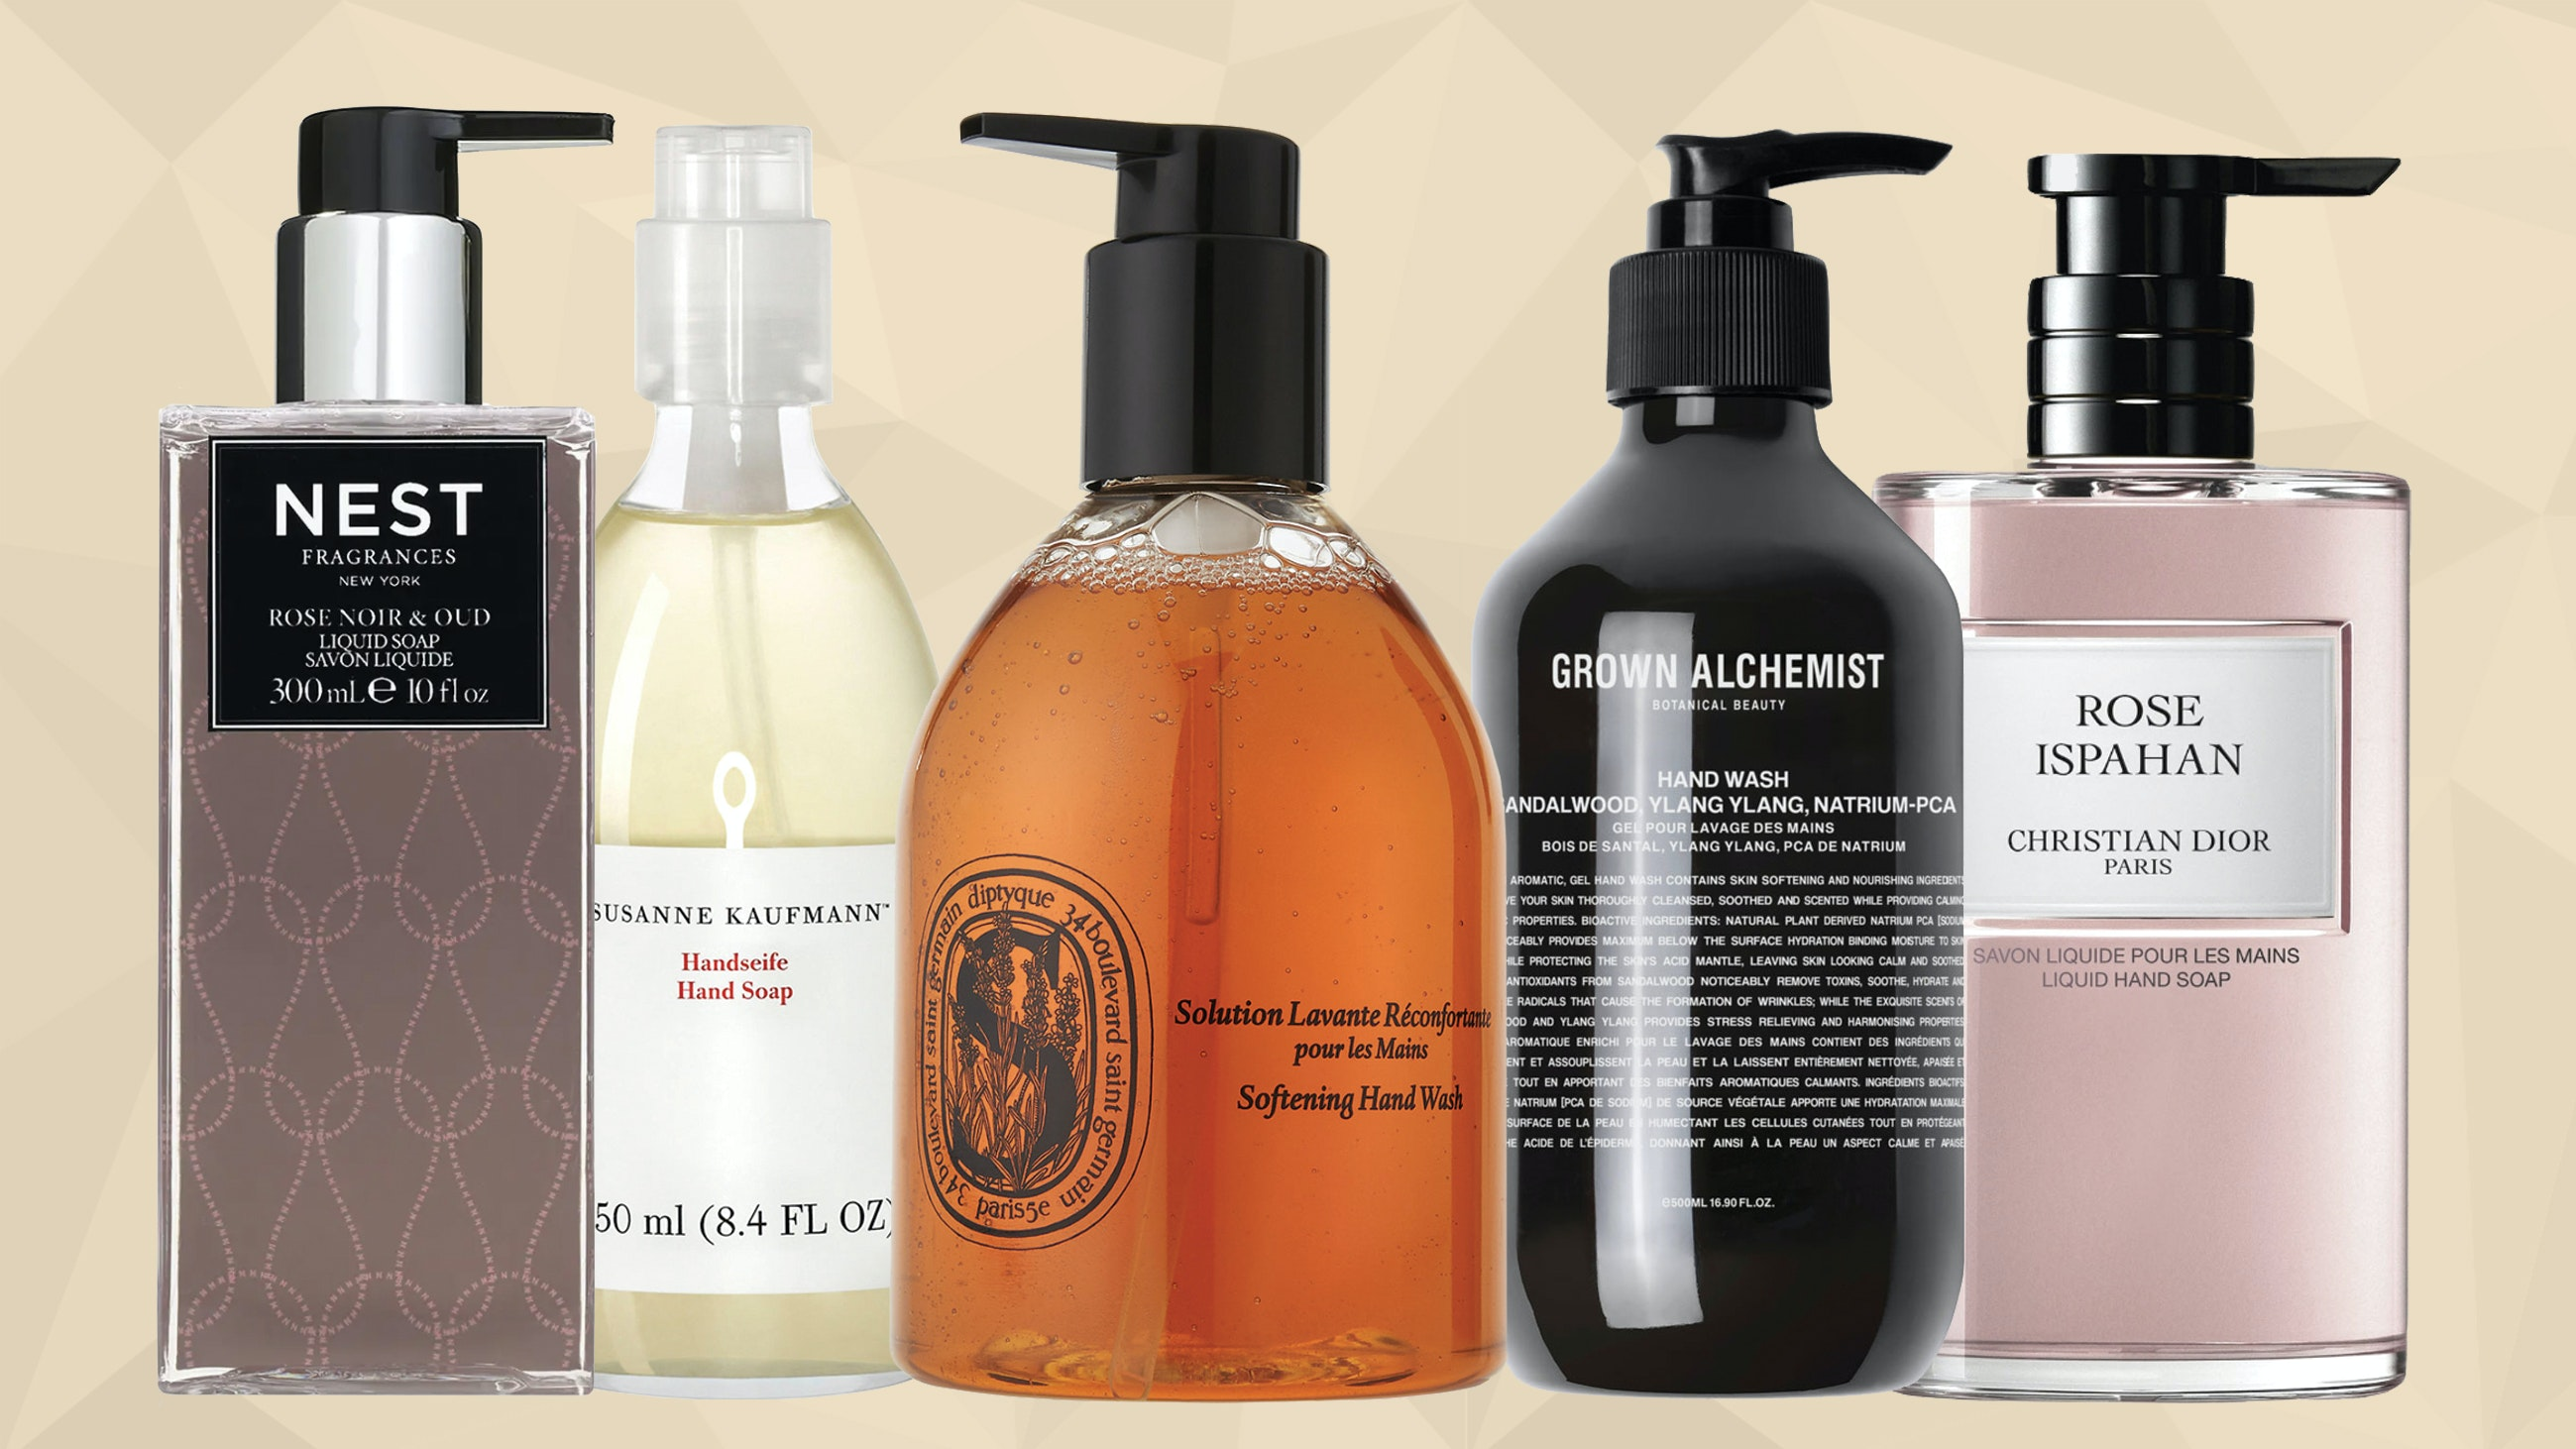 Luxury hand soaps - do you need an antibacterial handsoap?